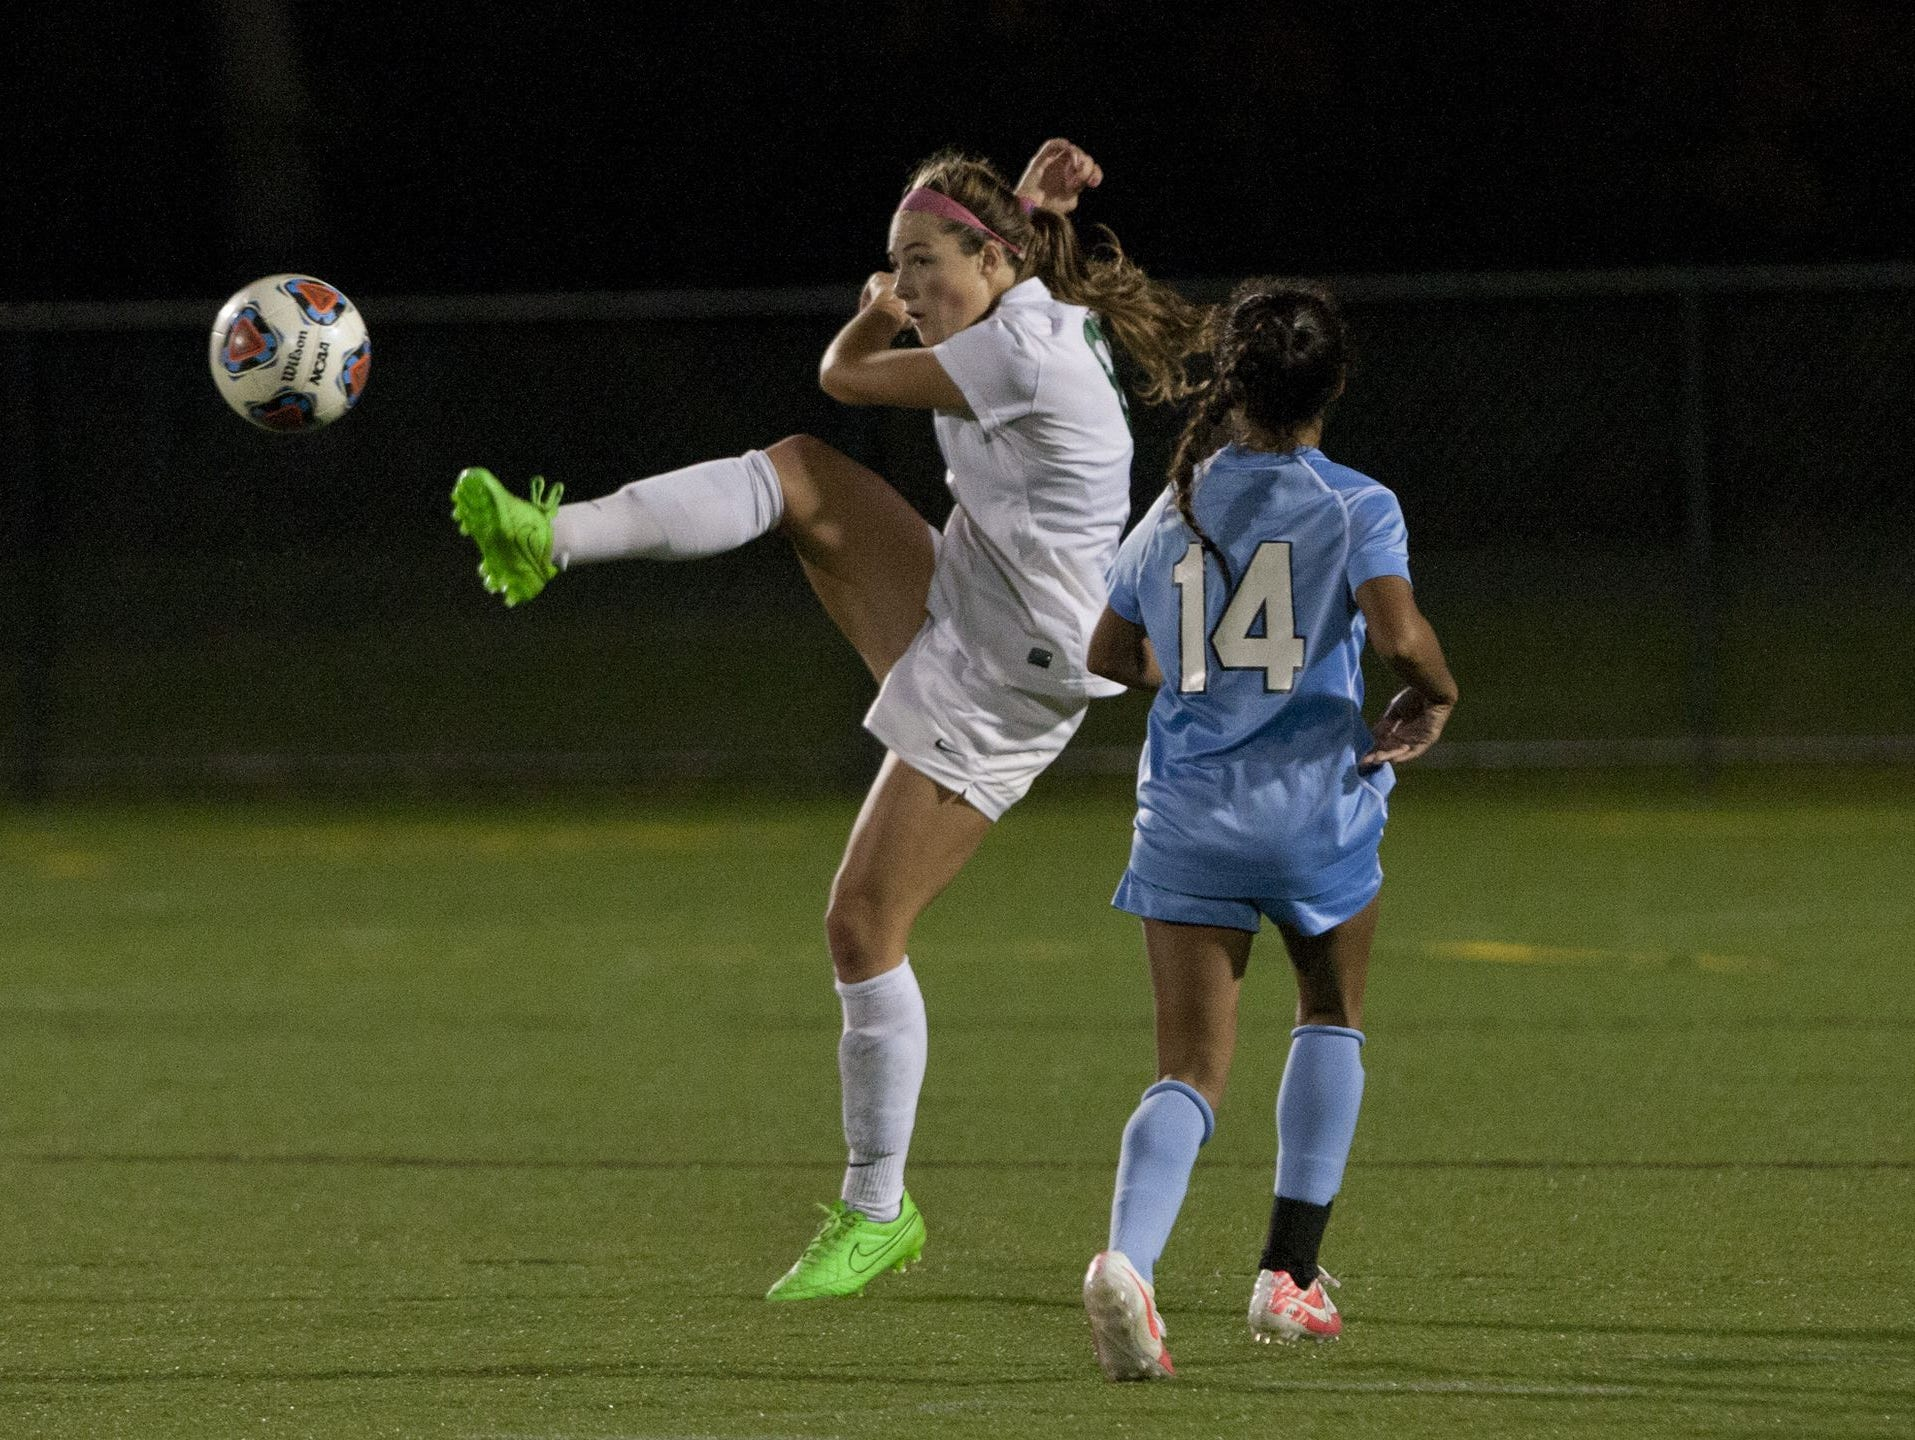 Colts Neck's Amanda Visco kicks the ball during the 2015 SCT final against Freehold Township on Oct. 31, 2015 at the Summerfield Elementary School in Neptune